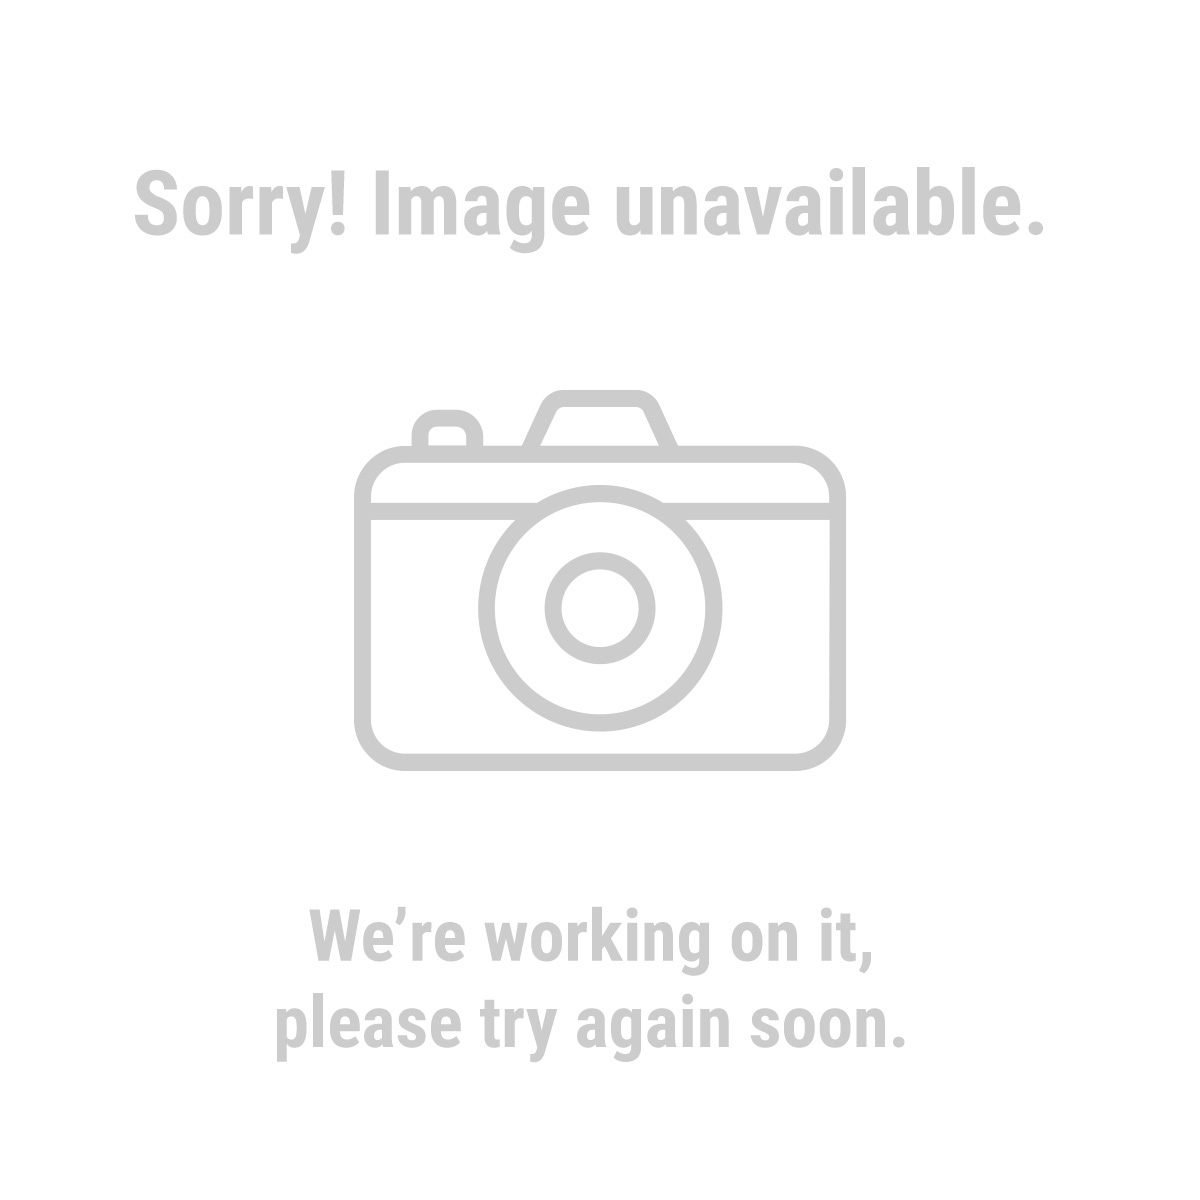 Path lighting on auction fence solar light was